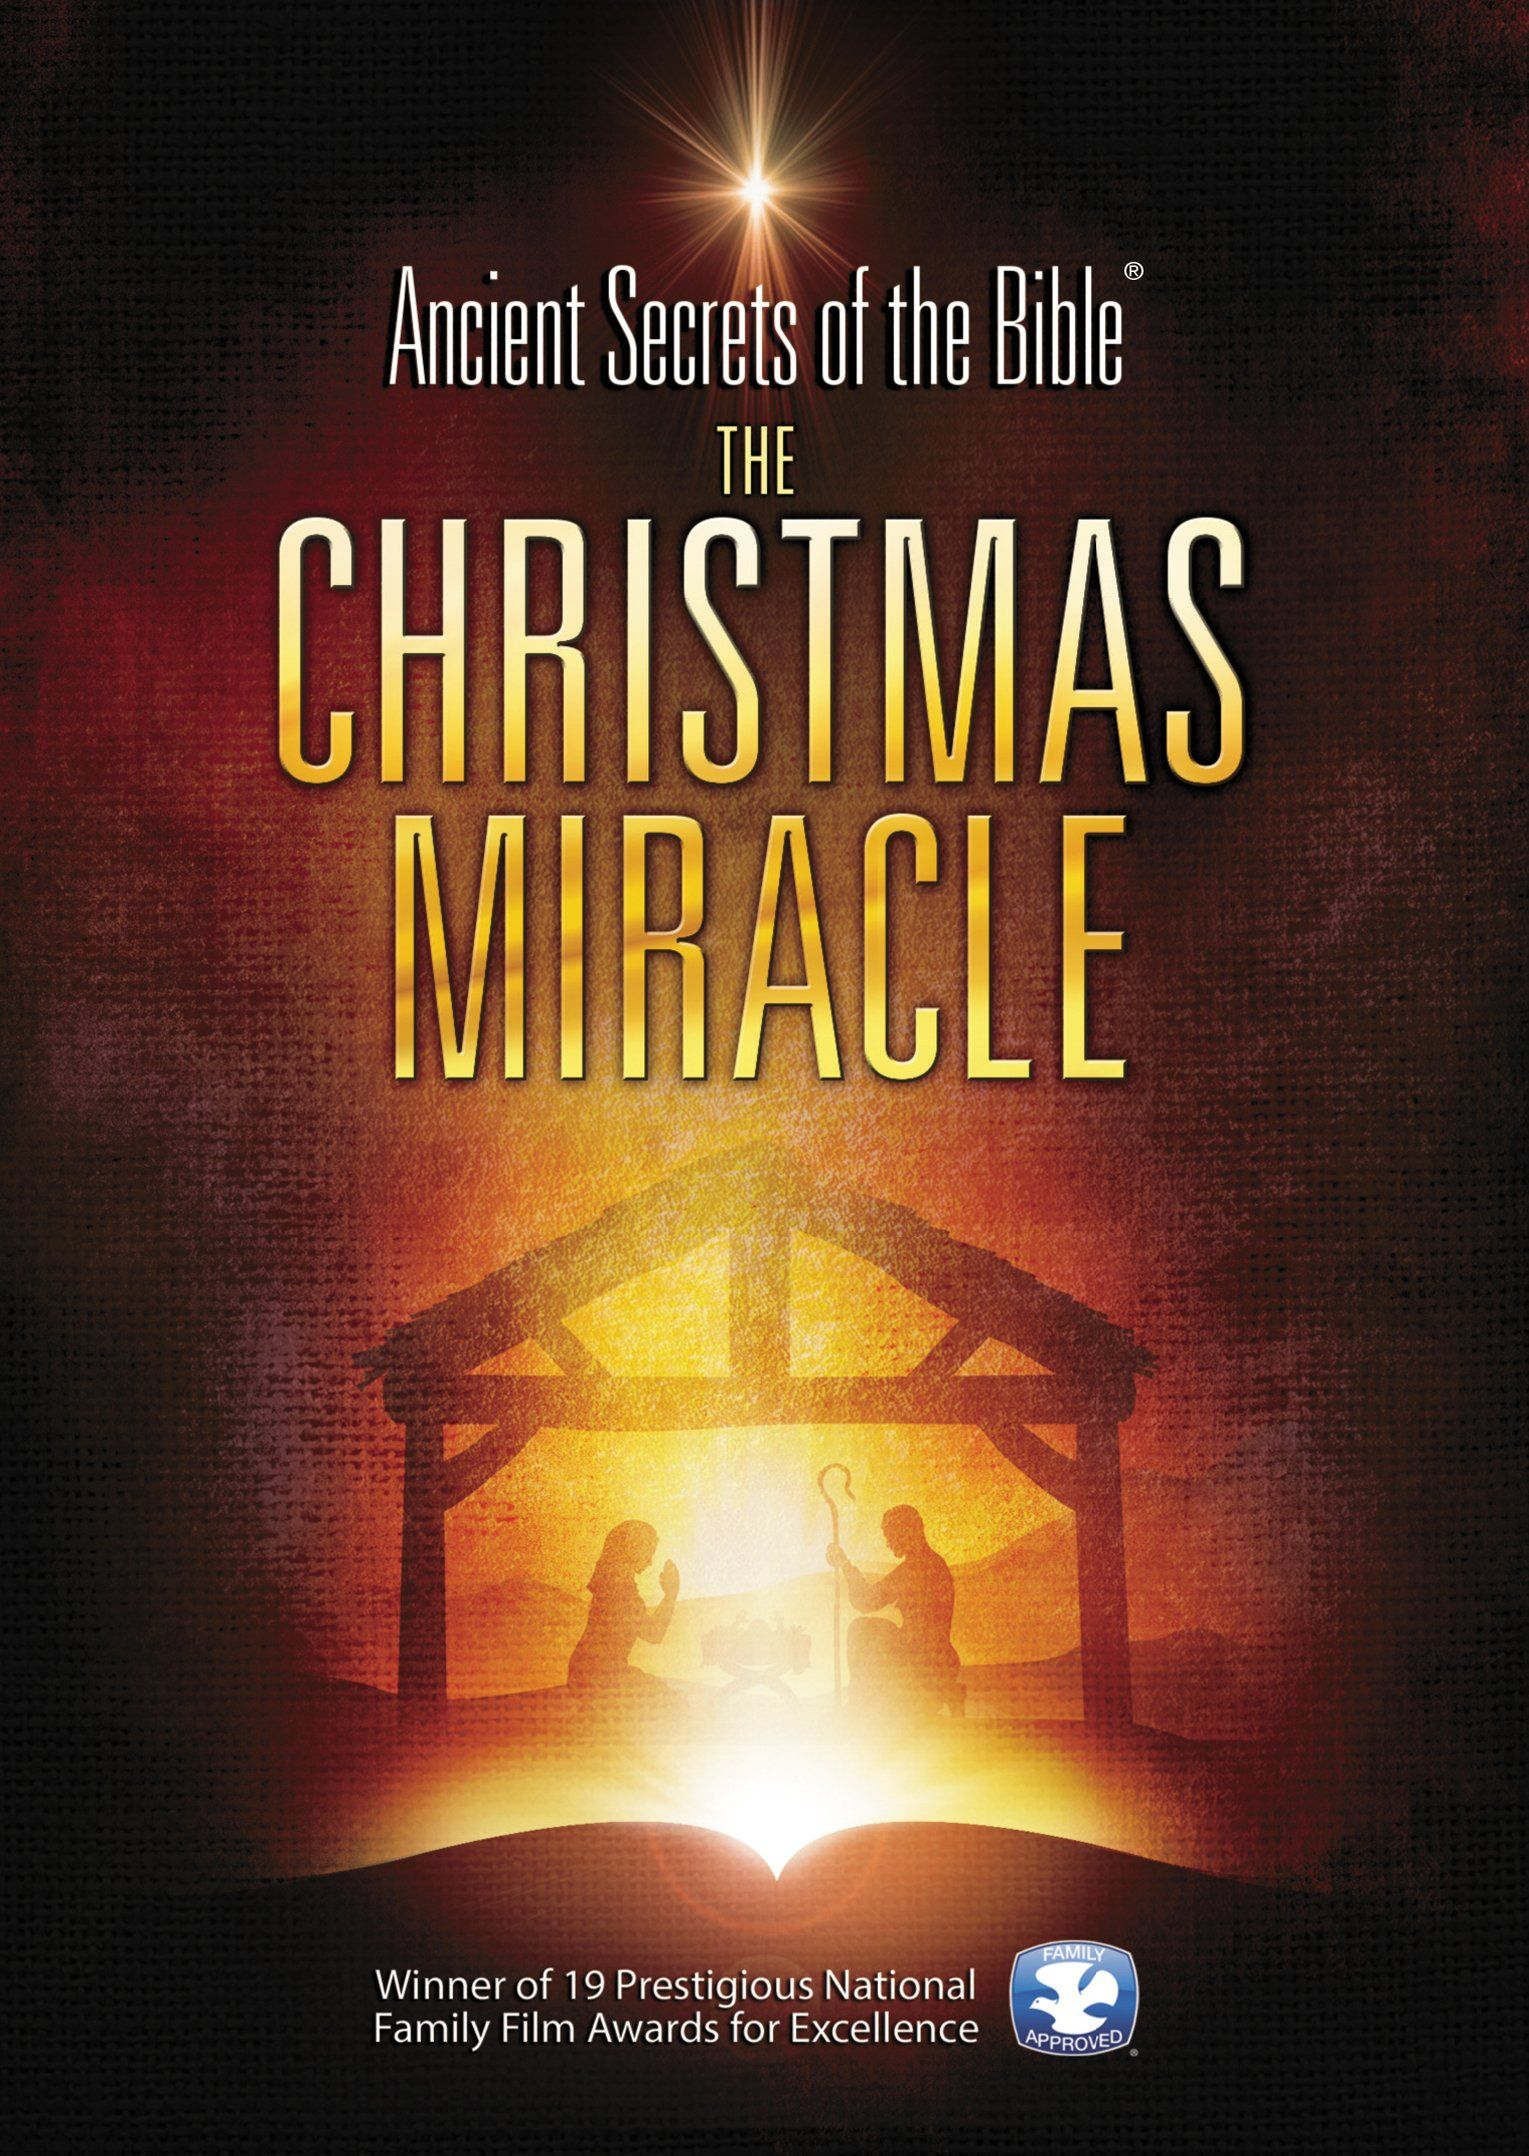 Ancient Secrets of the Bible: The Christmas Miracle | November 4th ...